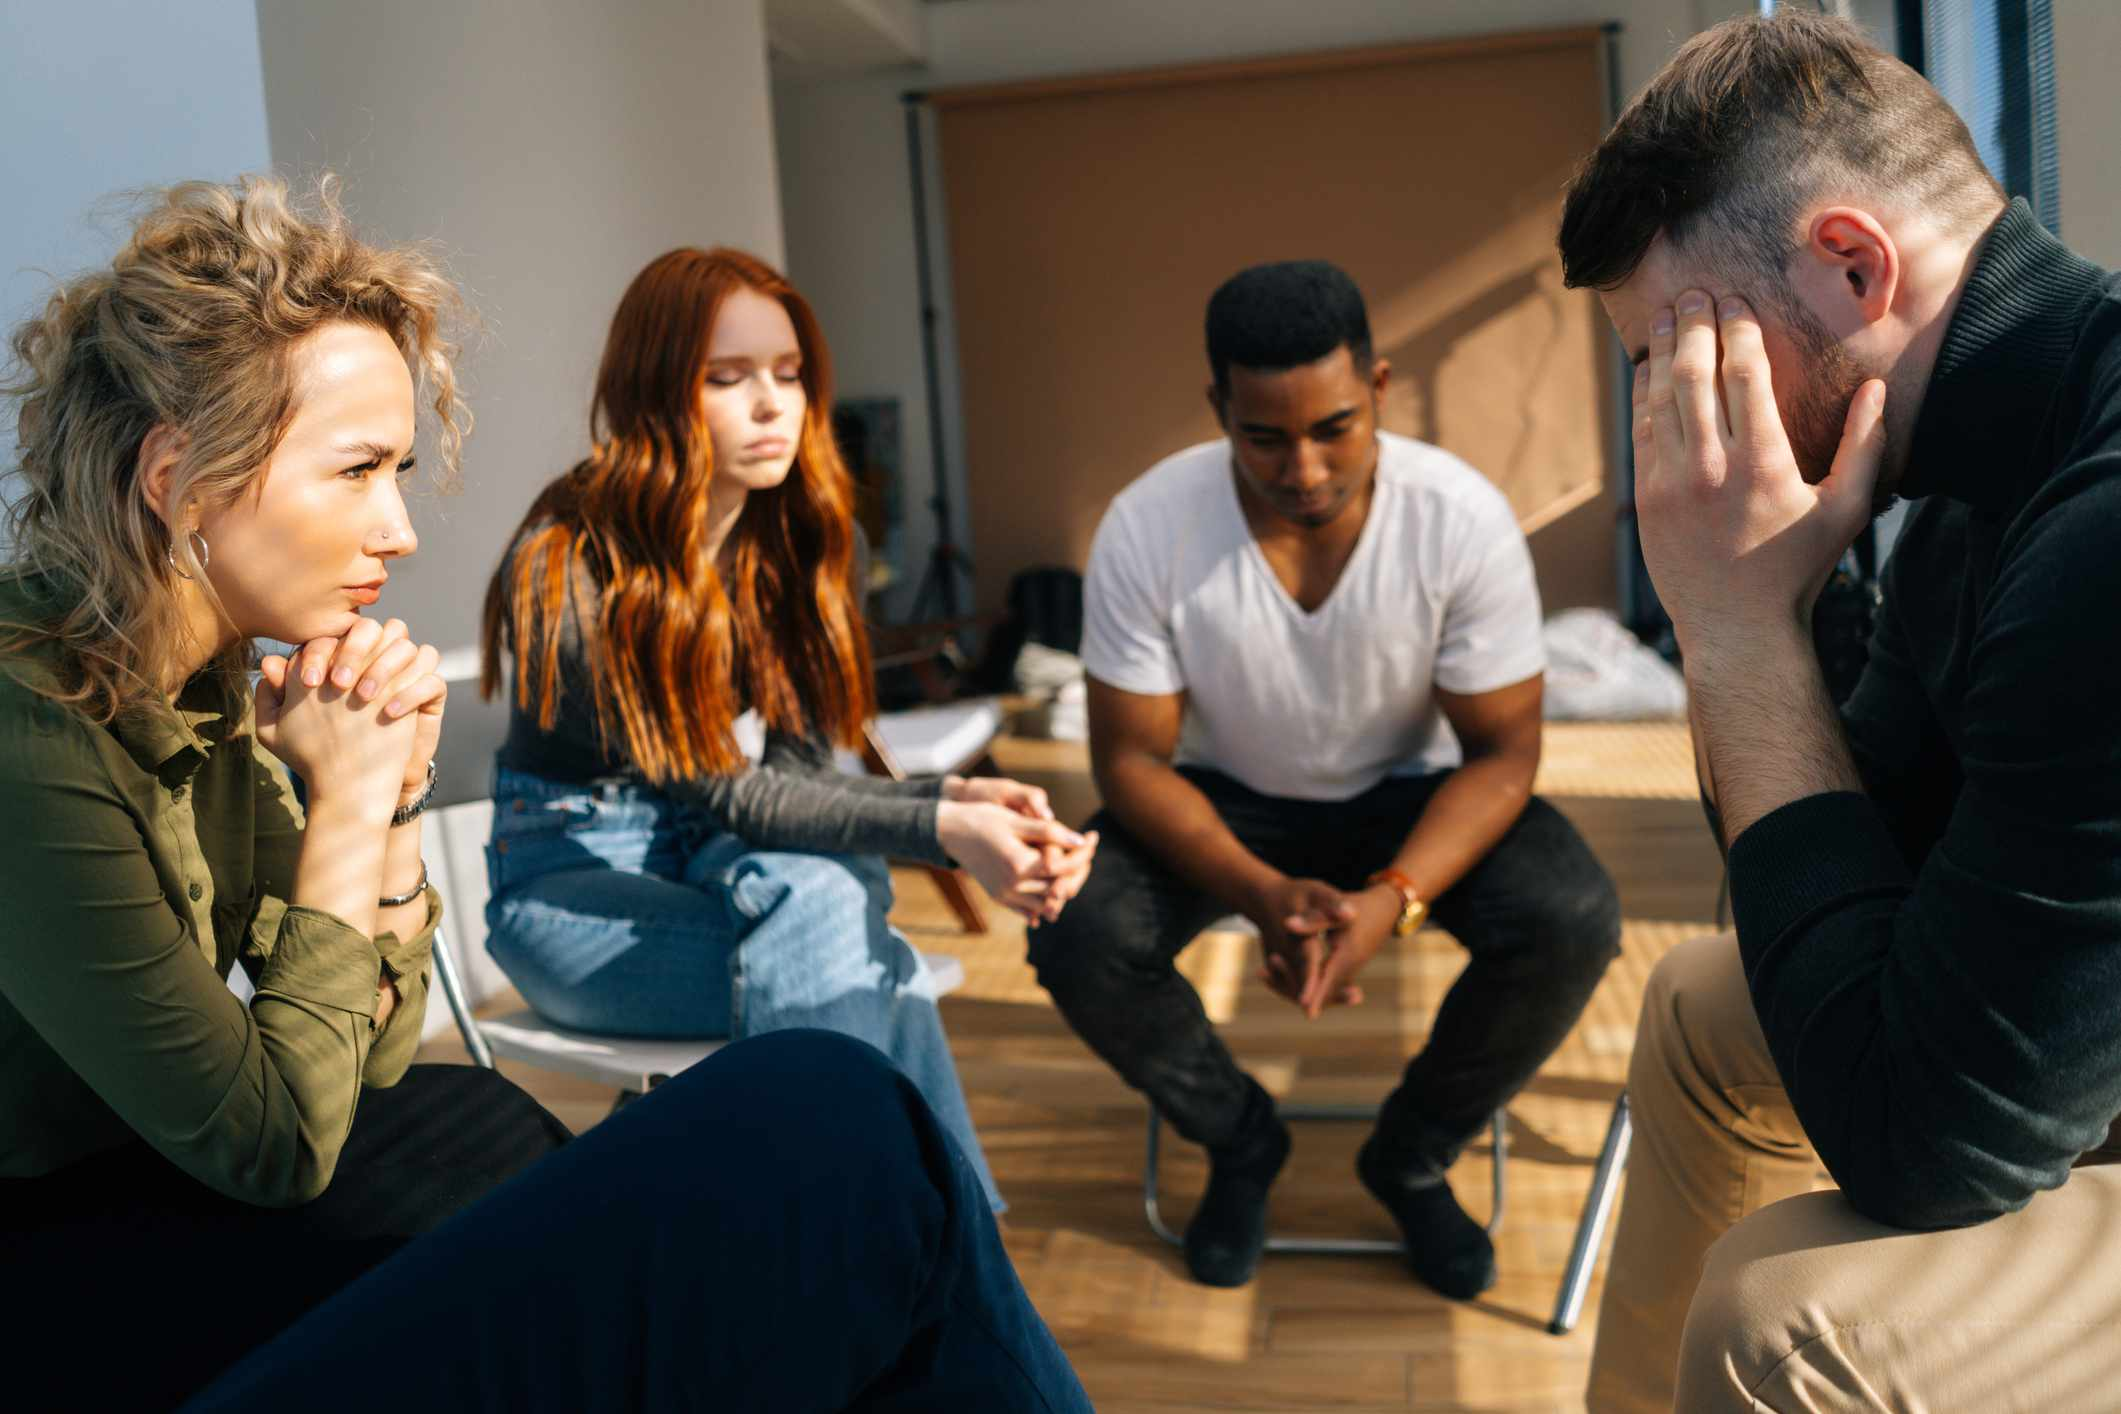 Two men and two women seated in a circle having an intense emotional conversation